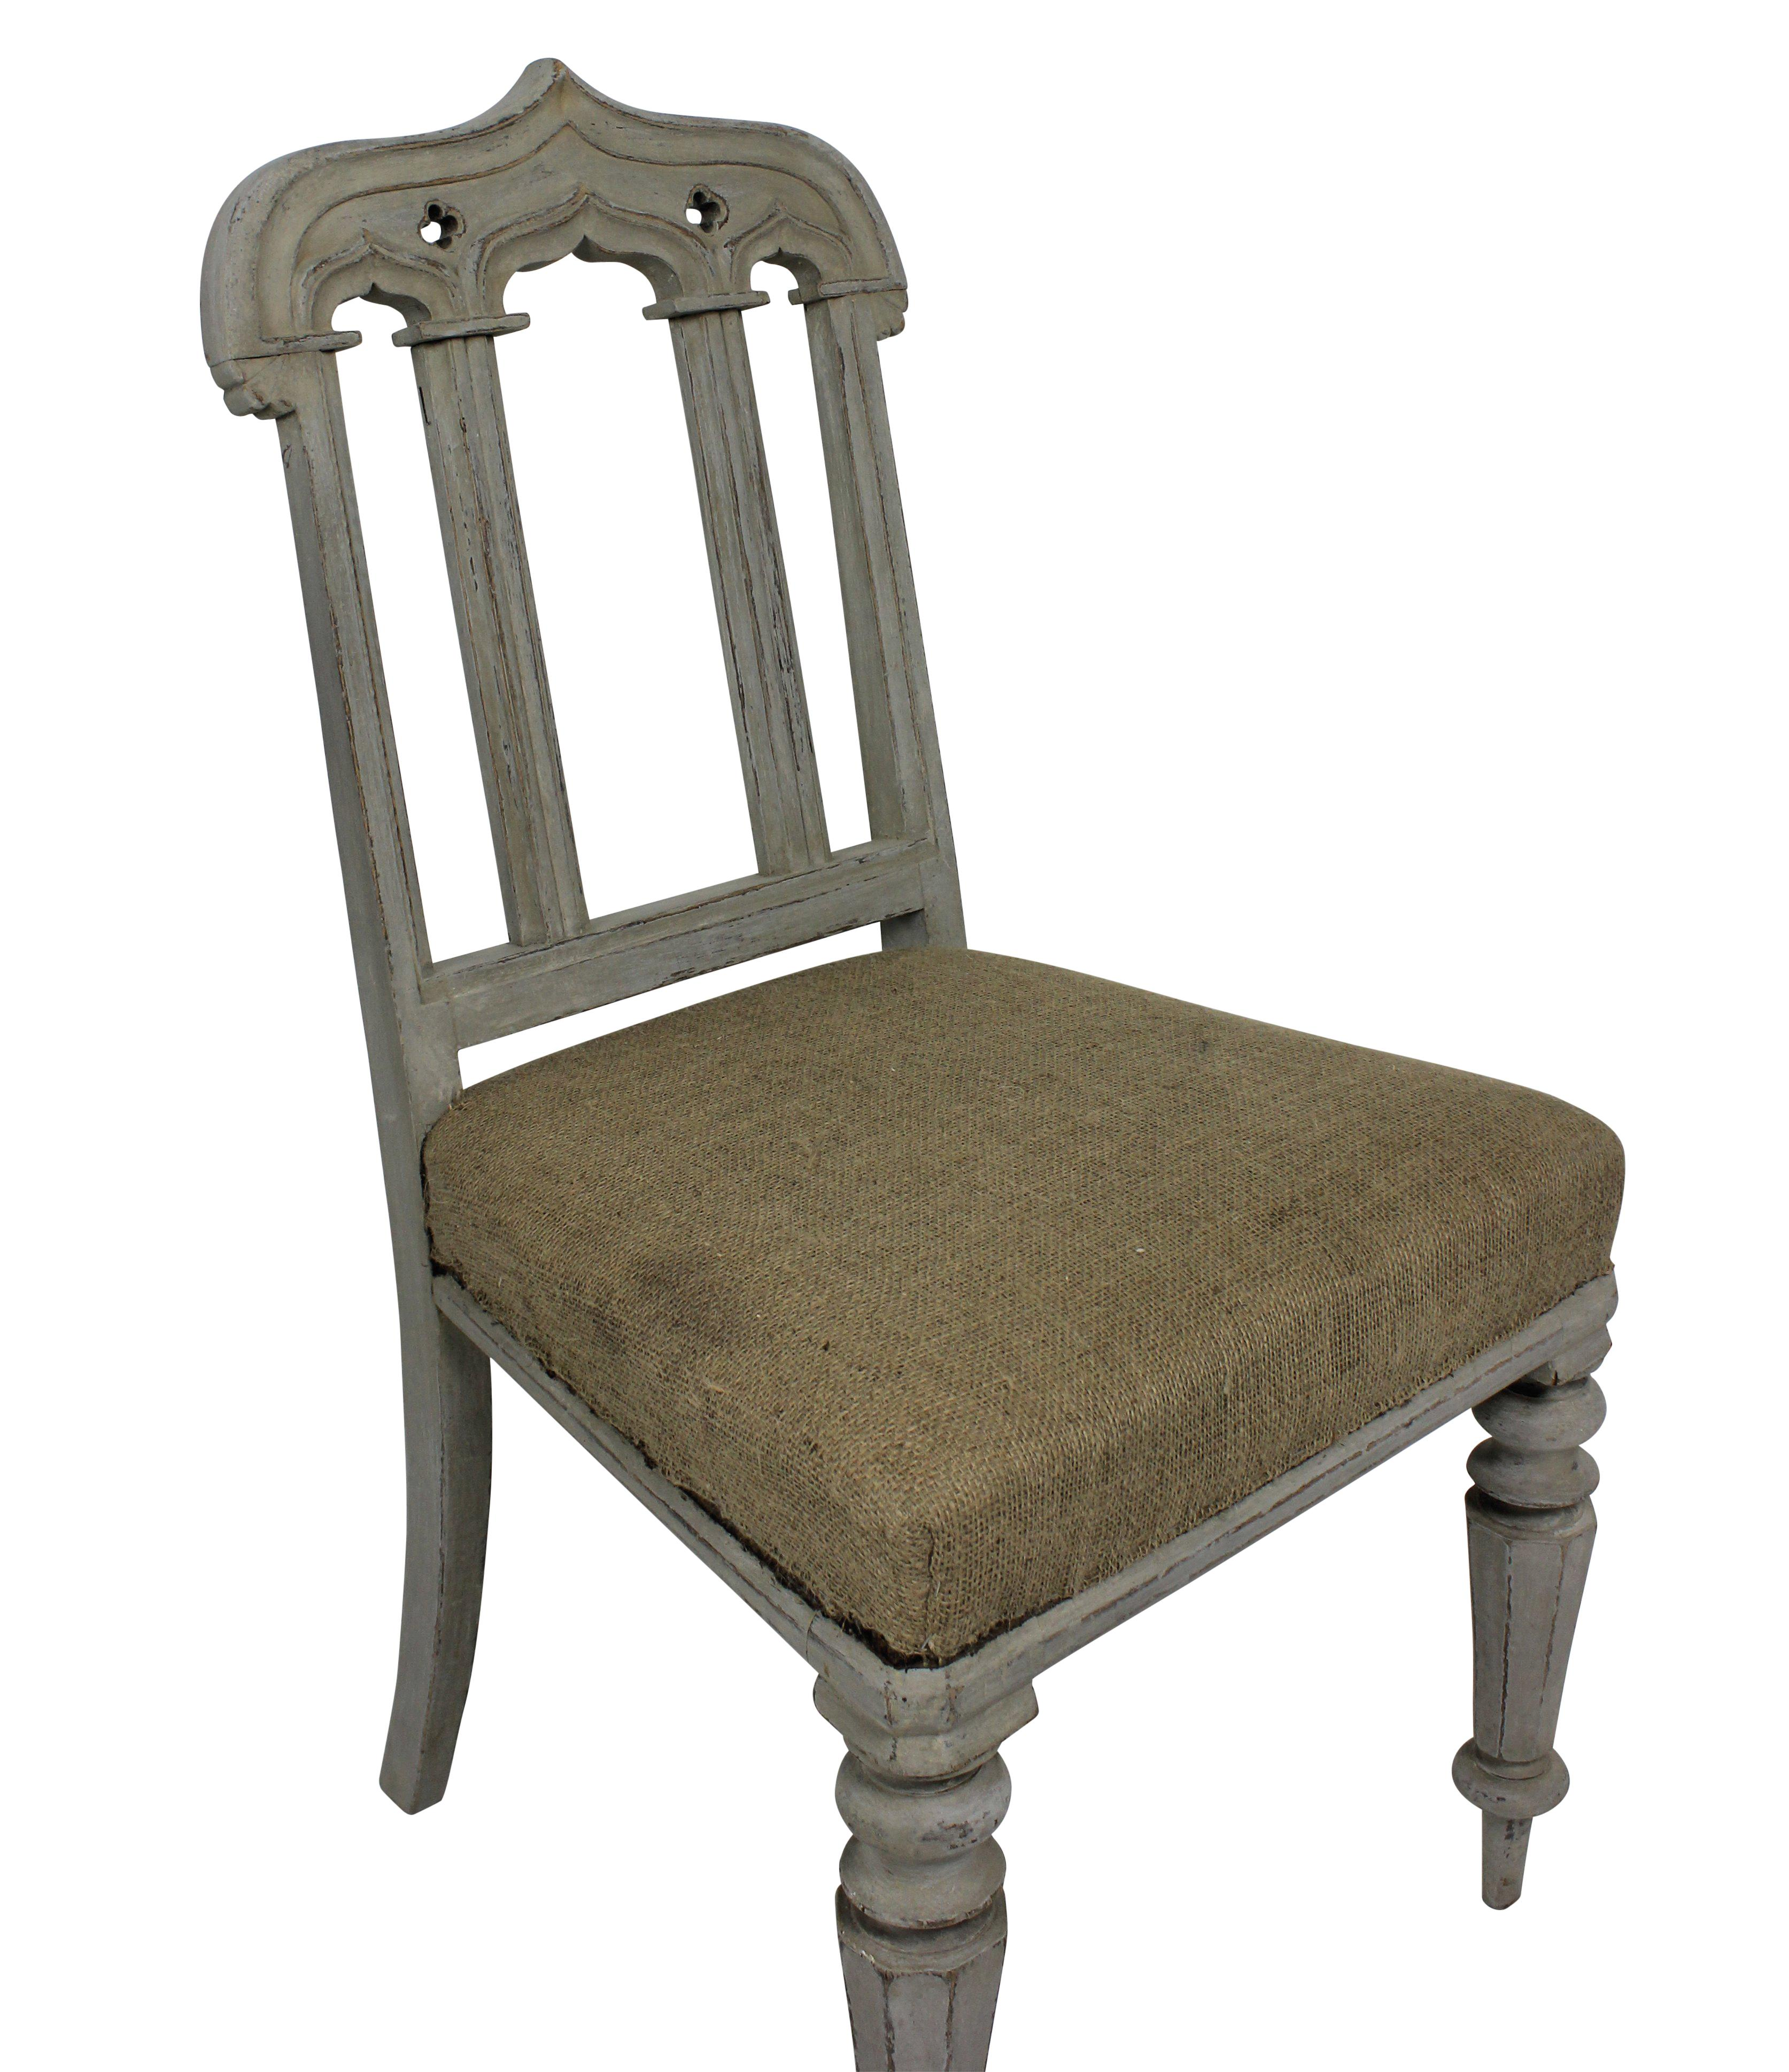 Pair of Gothic Chairs For Sale - Image 4 of 5  sc 1 st  Decaso & High-End Pair of Gothic Chairs | DECASO